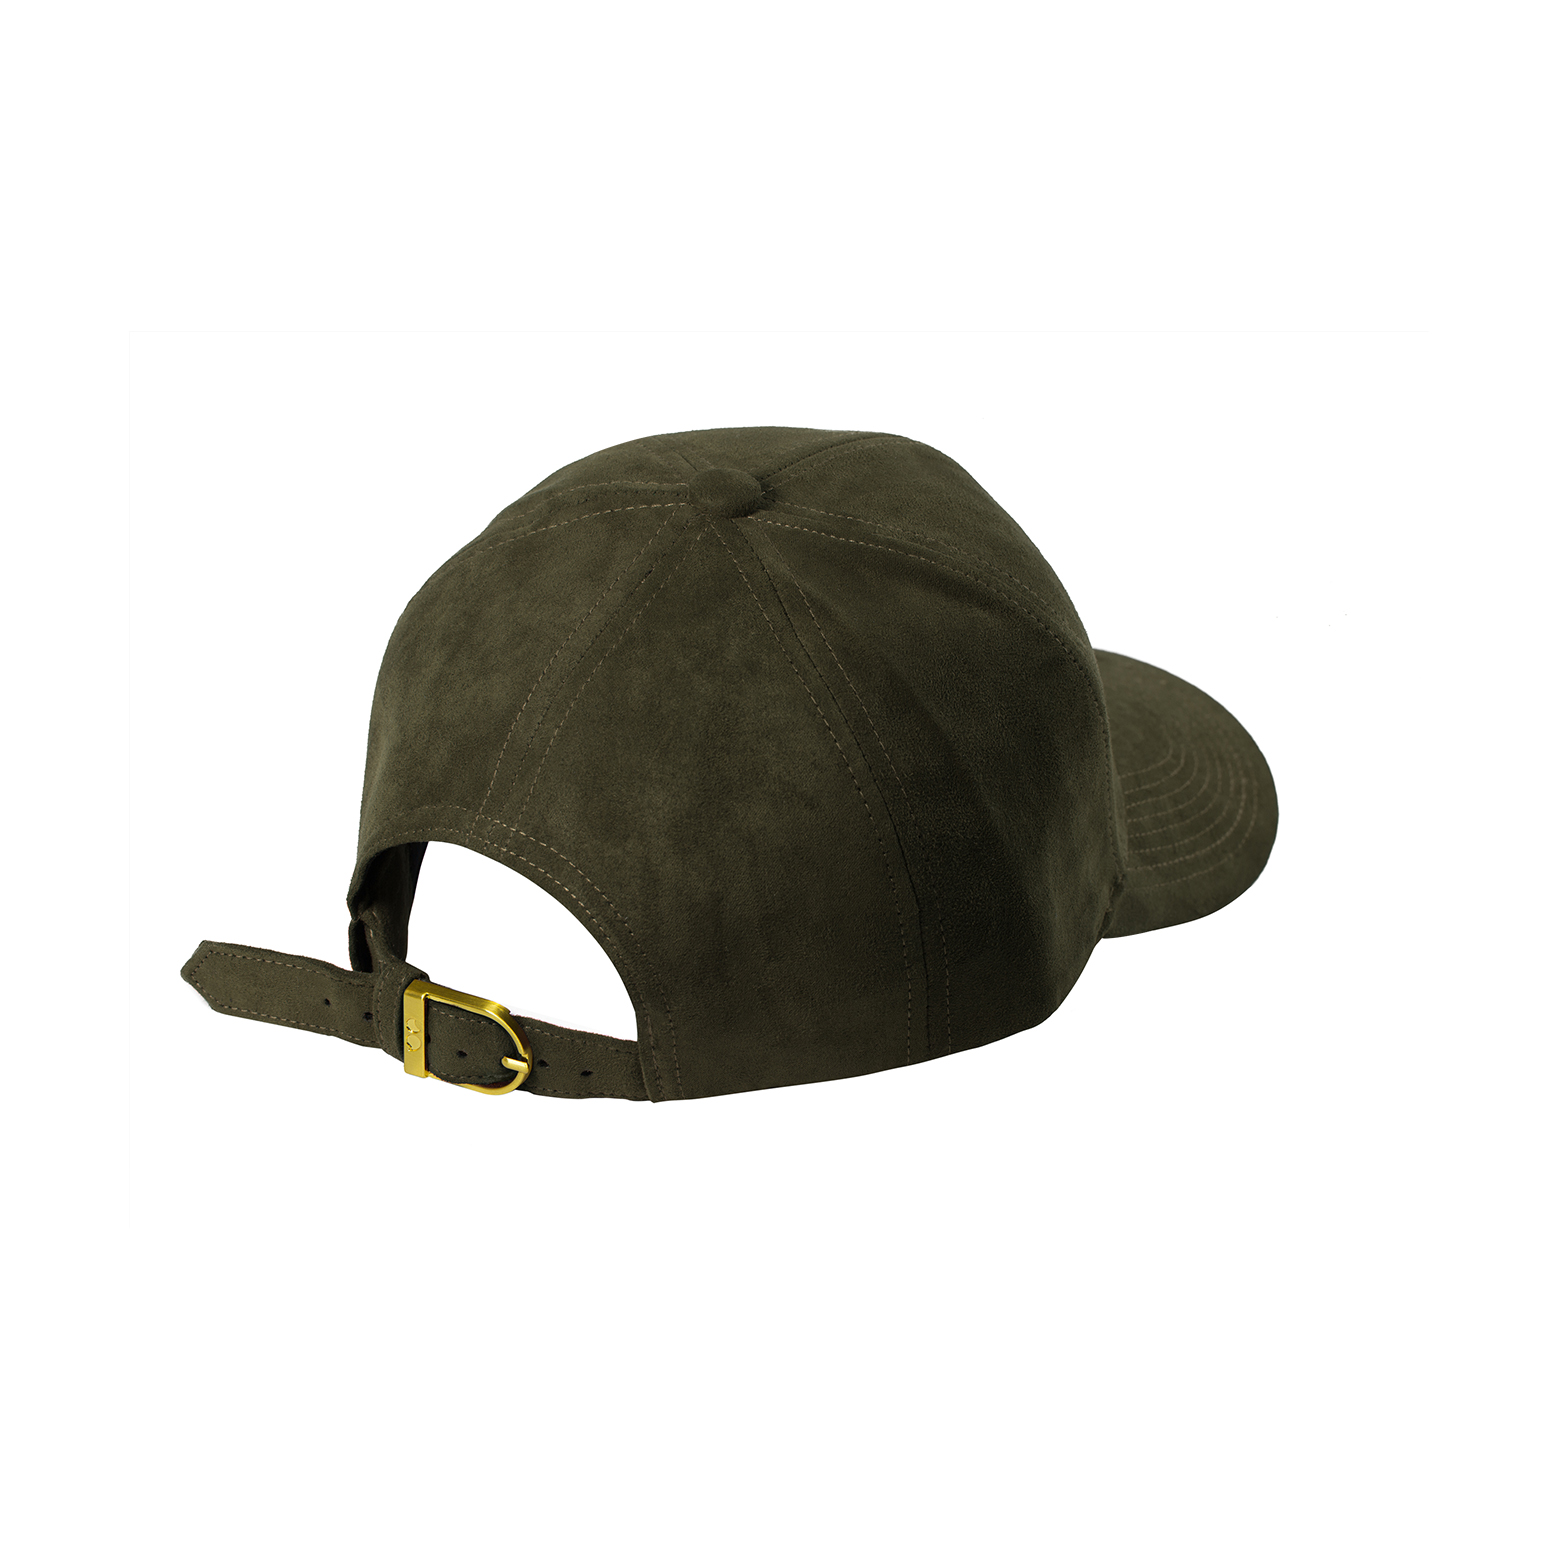 BASEBALL CAP OLIVE SUEDE BACK SIDE